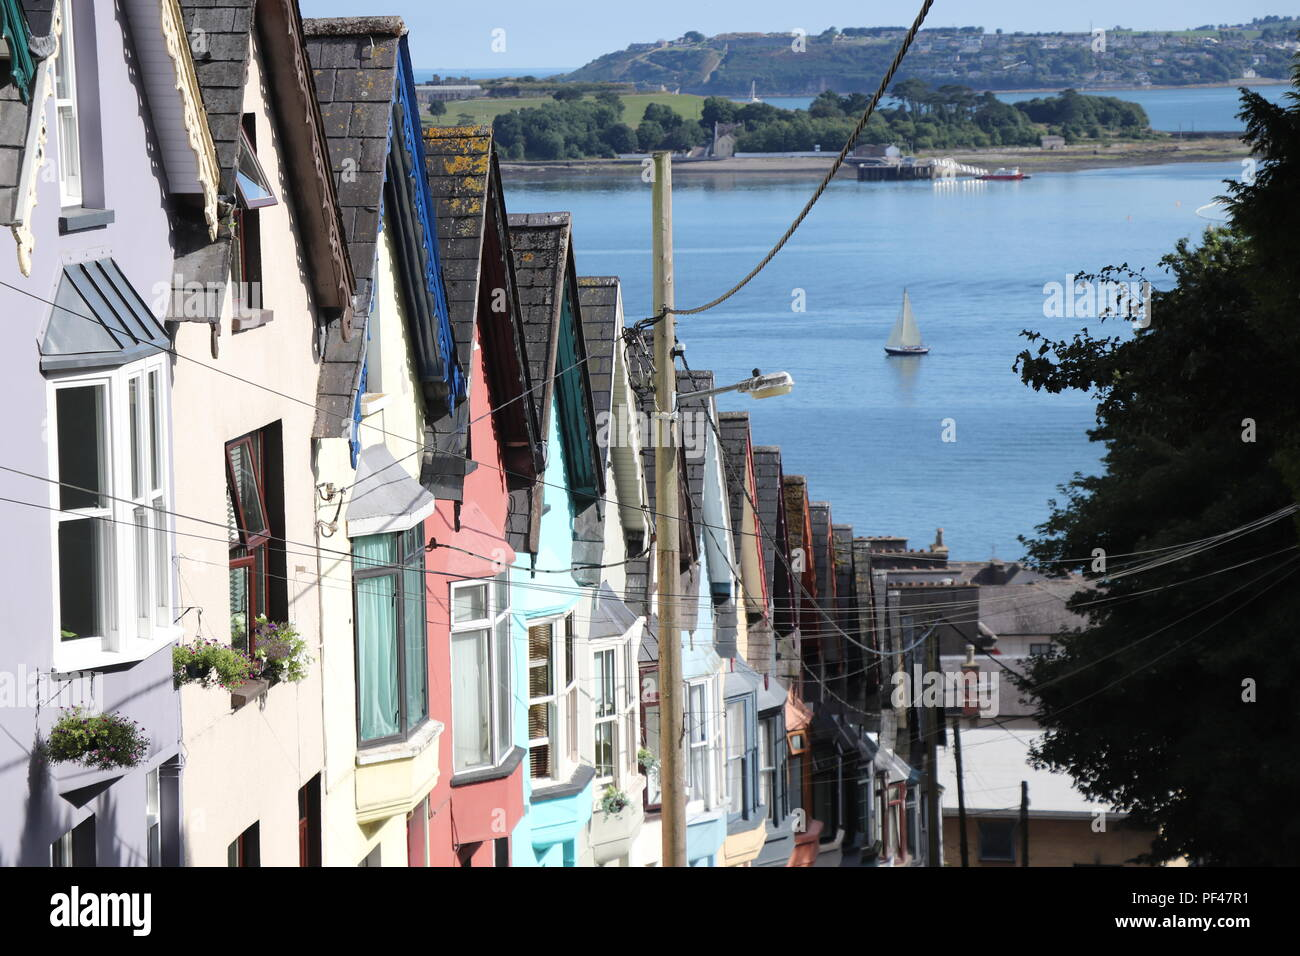 Colorful houses of Cobh, Ireland soaking the Irish summer sun. The symmetry is stunning and one of the best preserved parts in this little lovely town - Stock Image